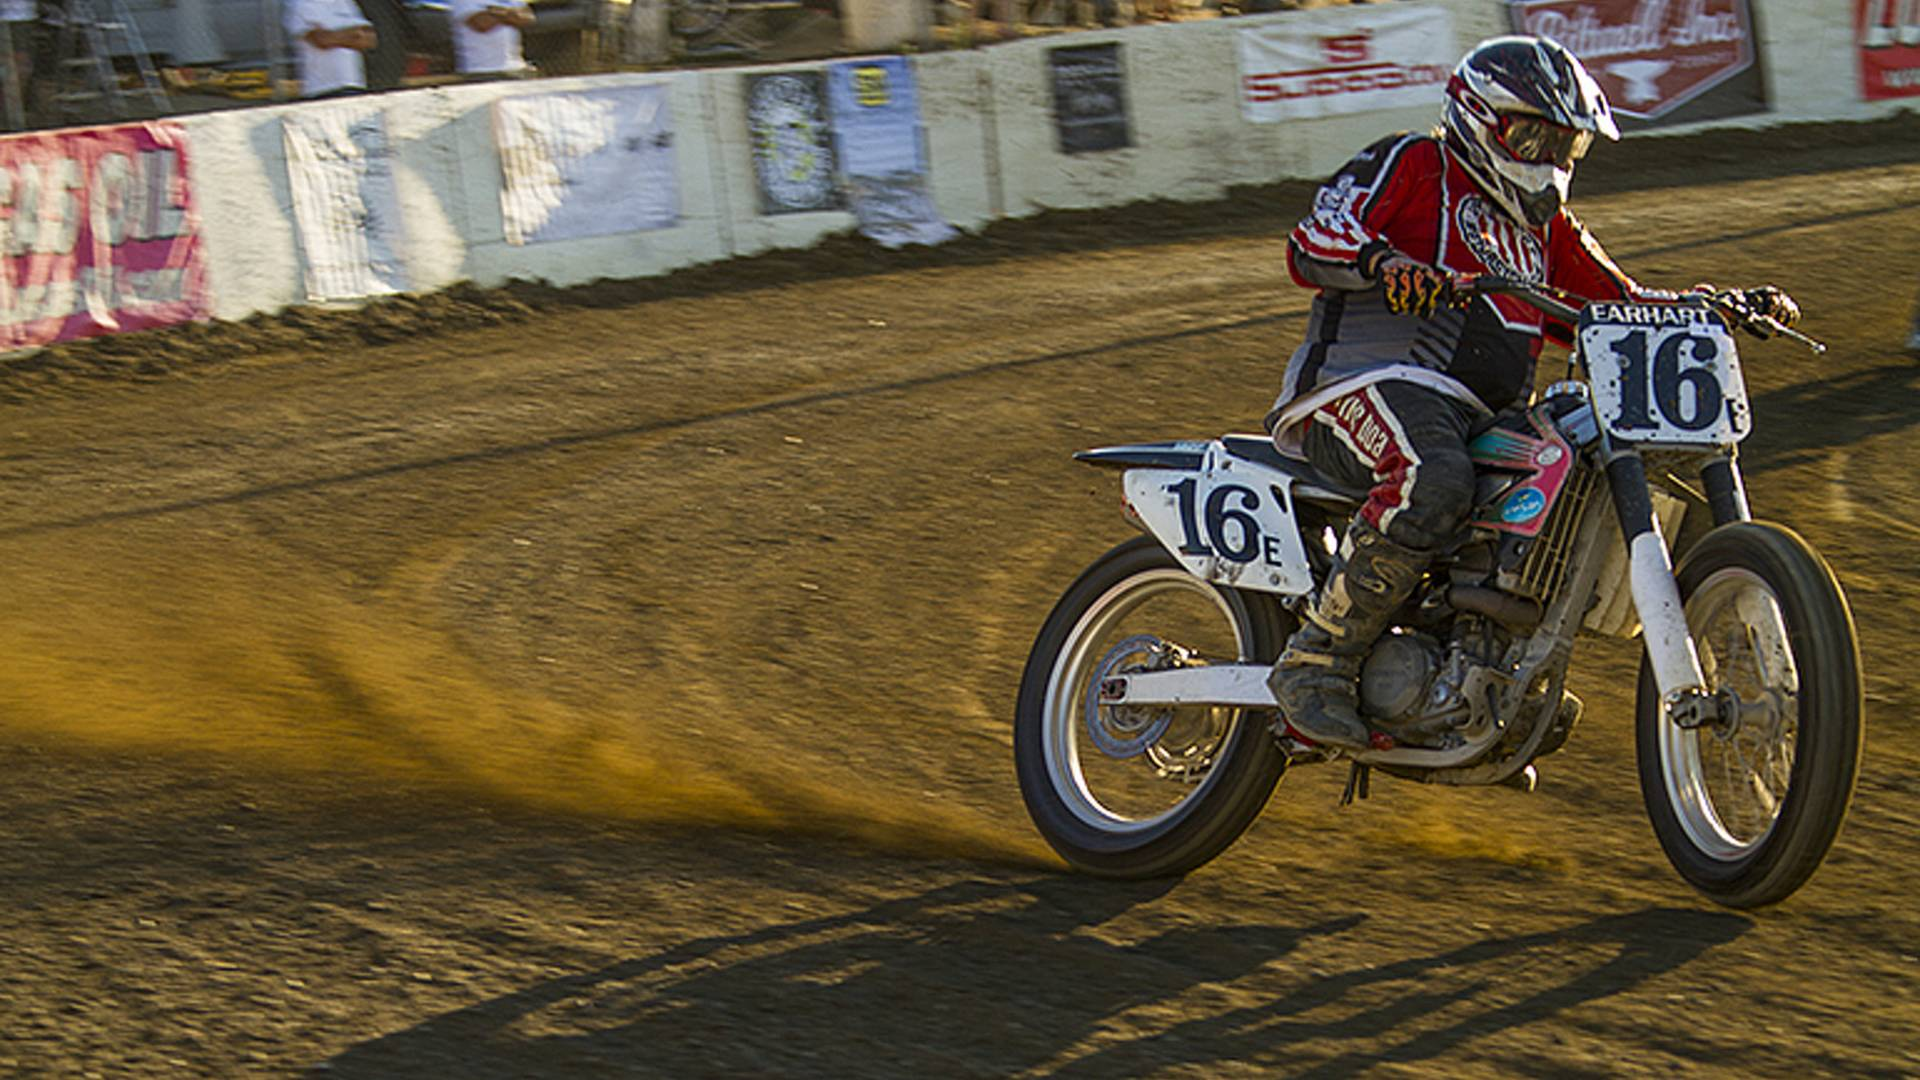 American Flat Track 2019 Schedule The 2019 American Flat Track Season Is About To Begin